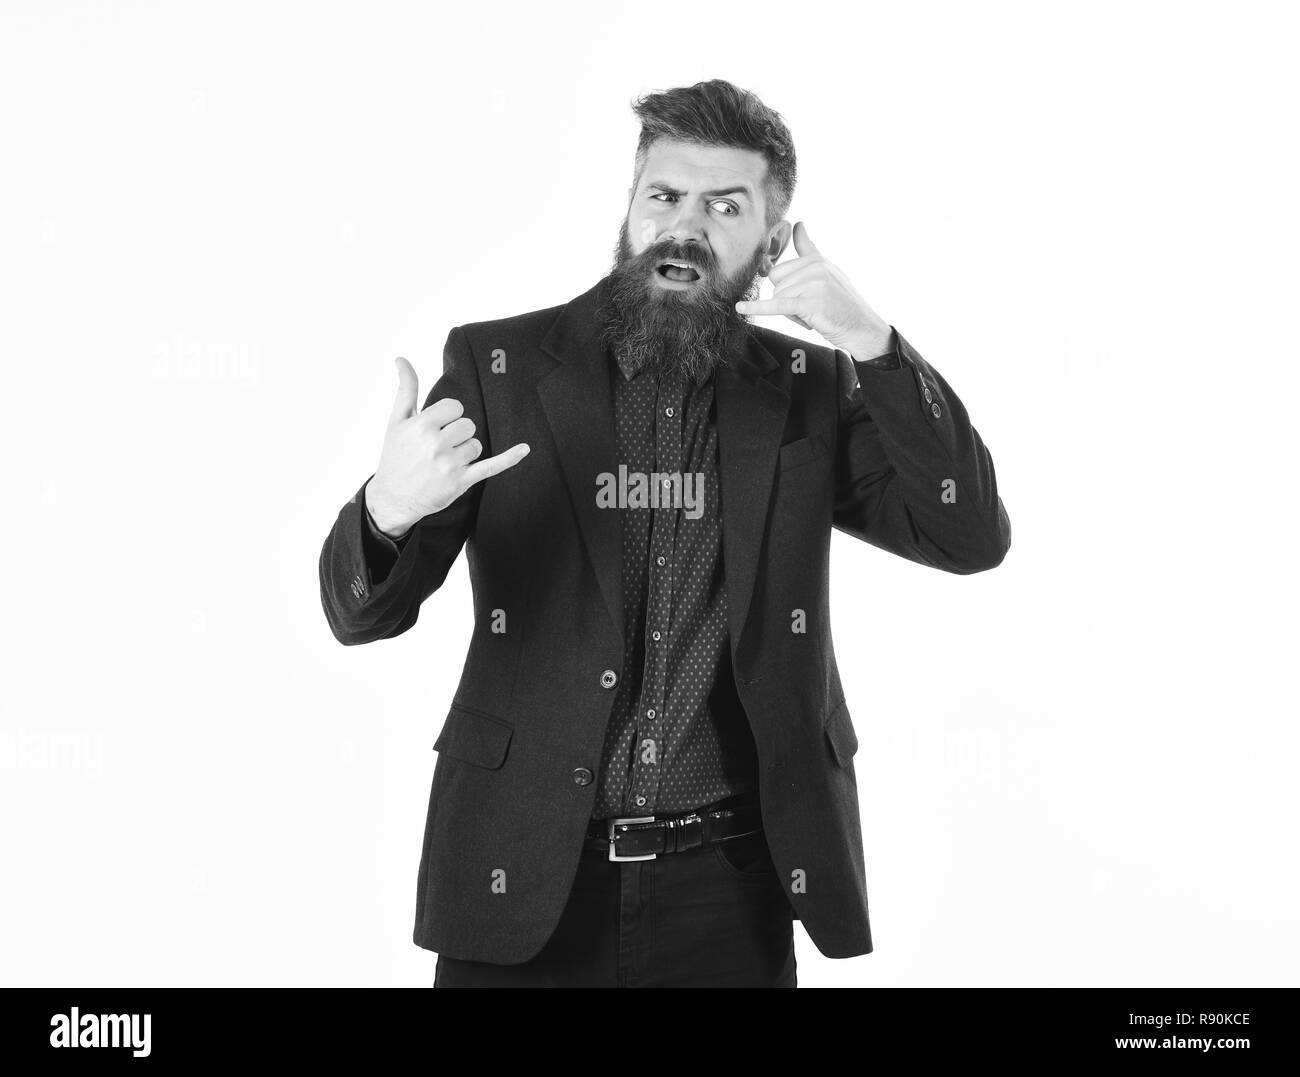 Bad phone service. Bearded man shows call me gesture. Hipster with long beard and unsatisfied face. Mature man wears smart suit. Mobile, success, negative emotions, business, multitasking concept. - Stock Image